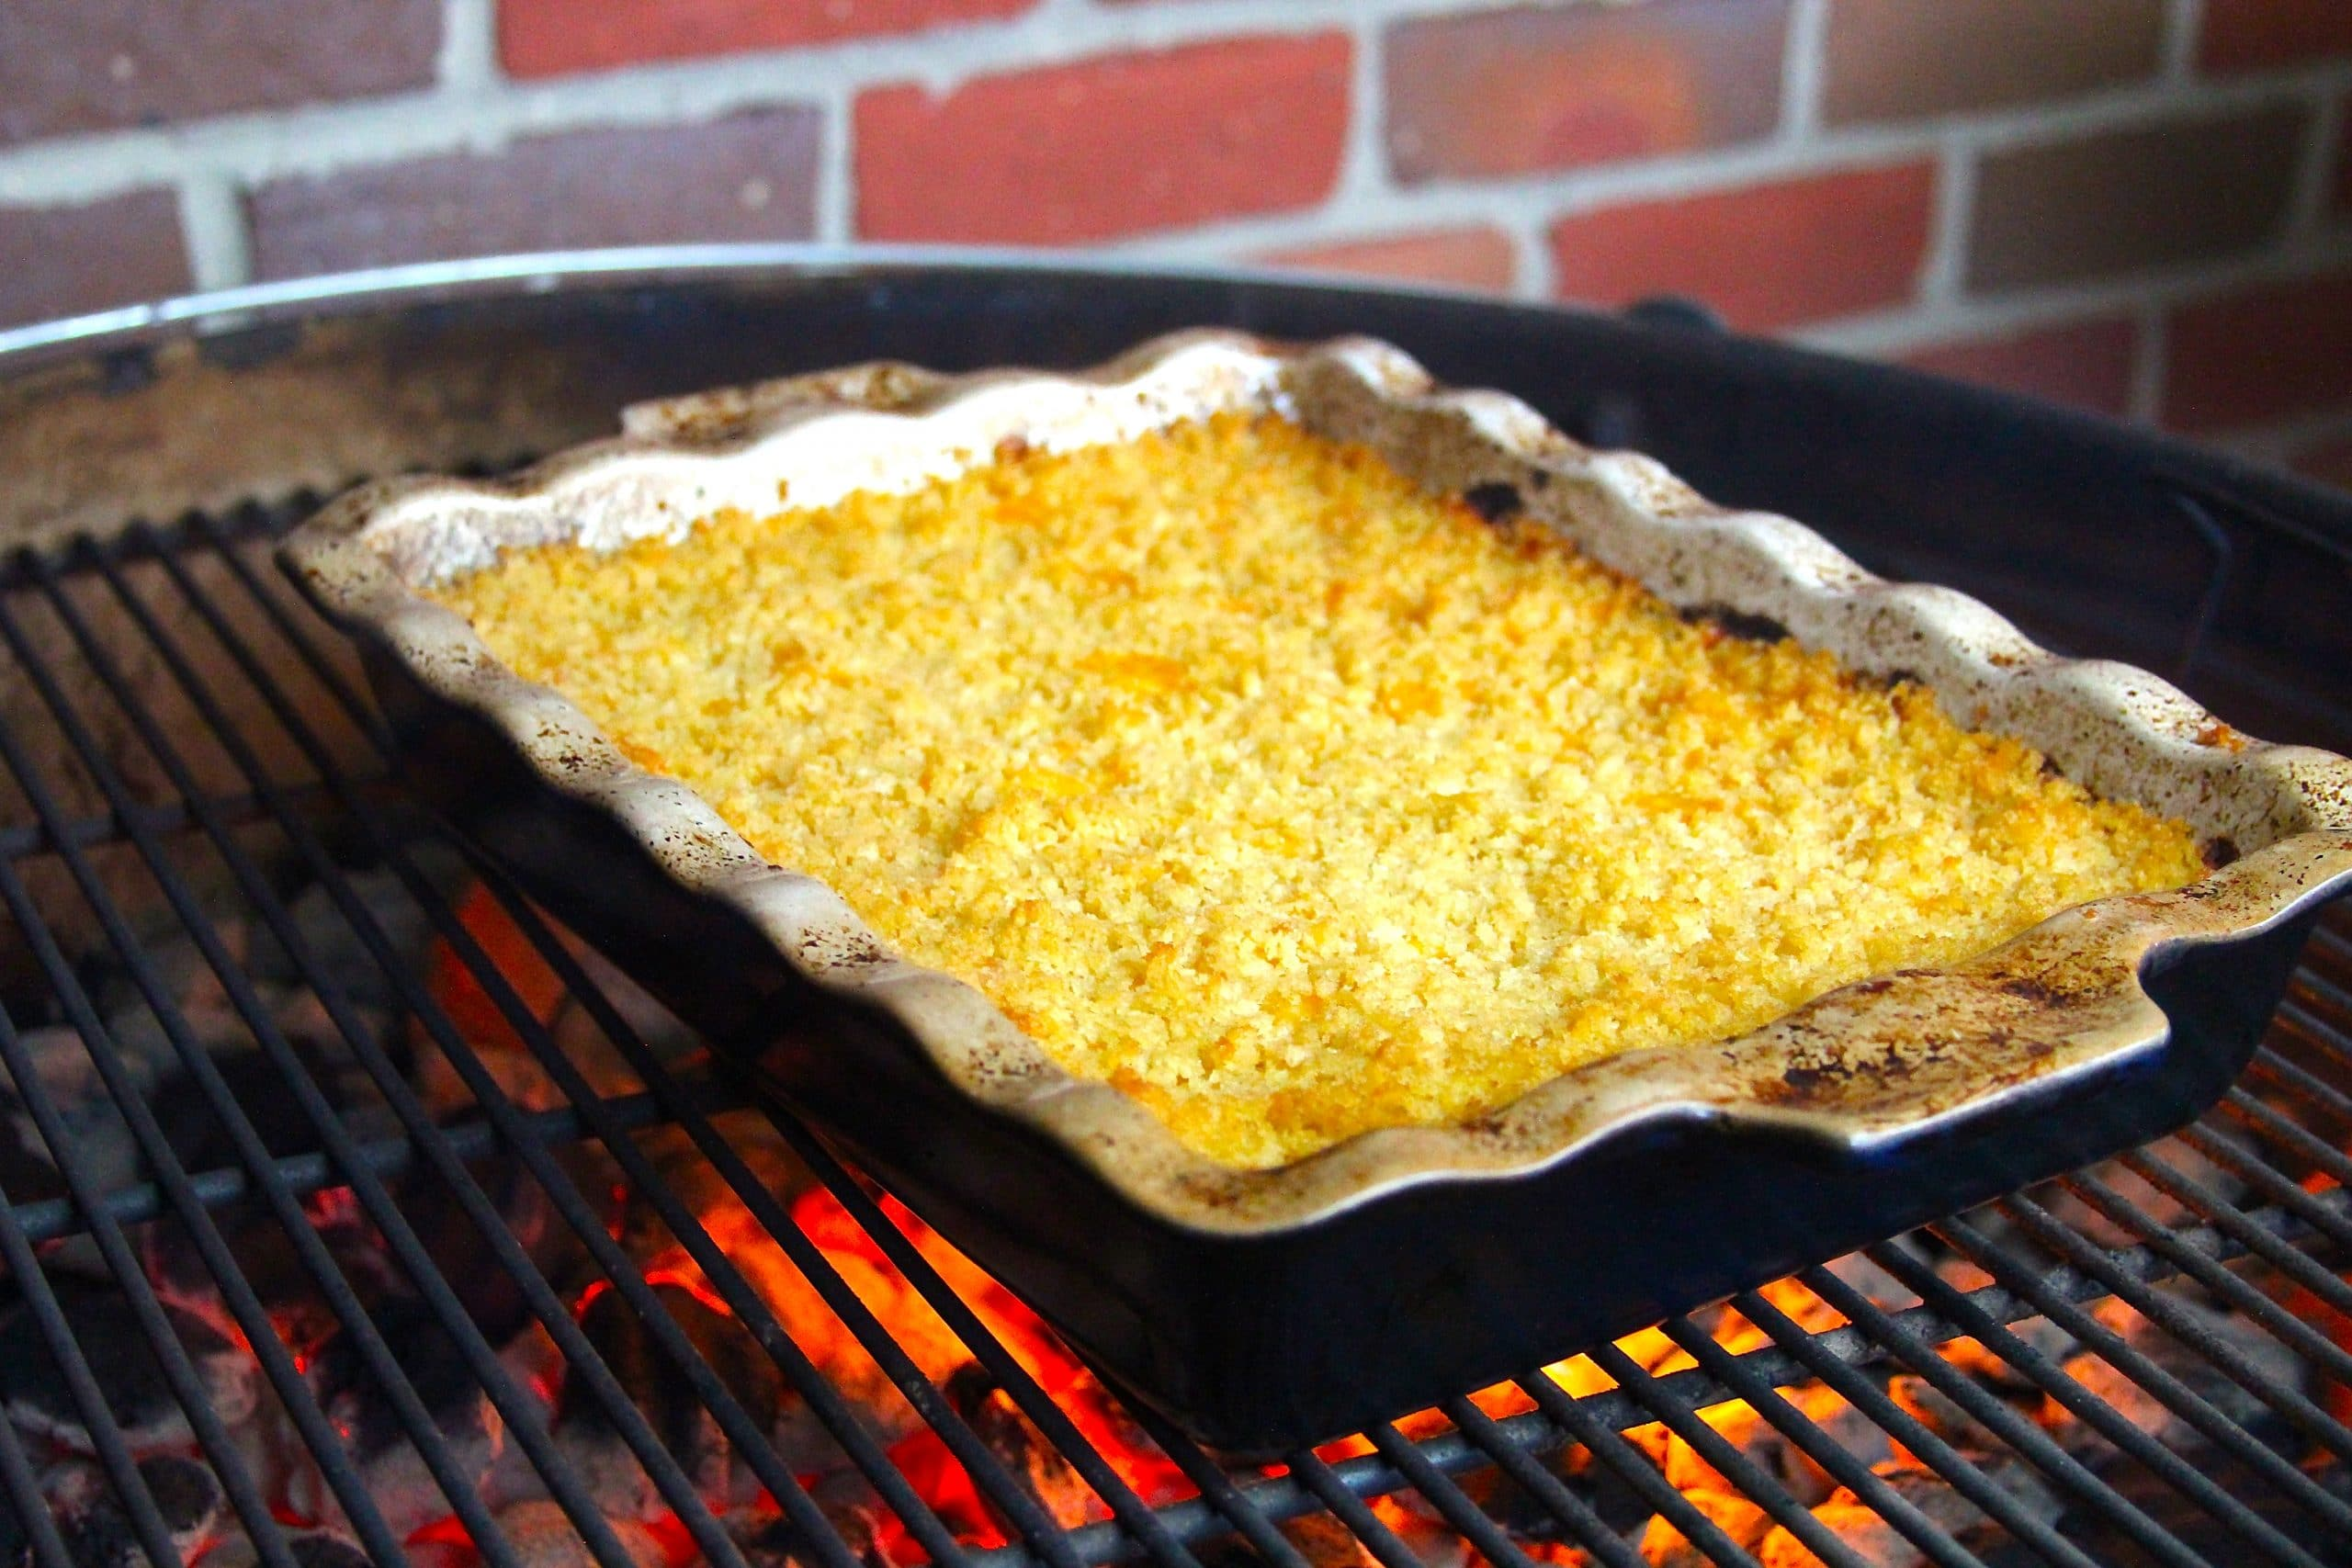 Mac and cheese on the grill